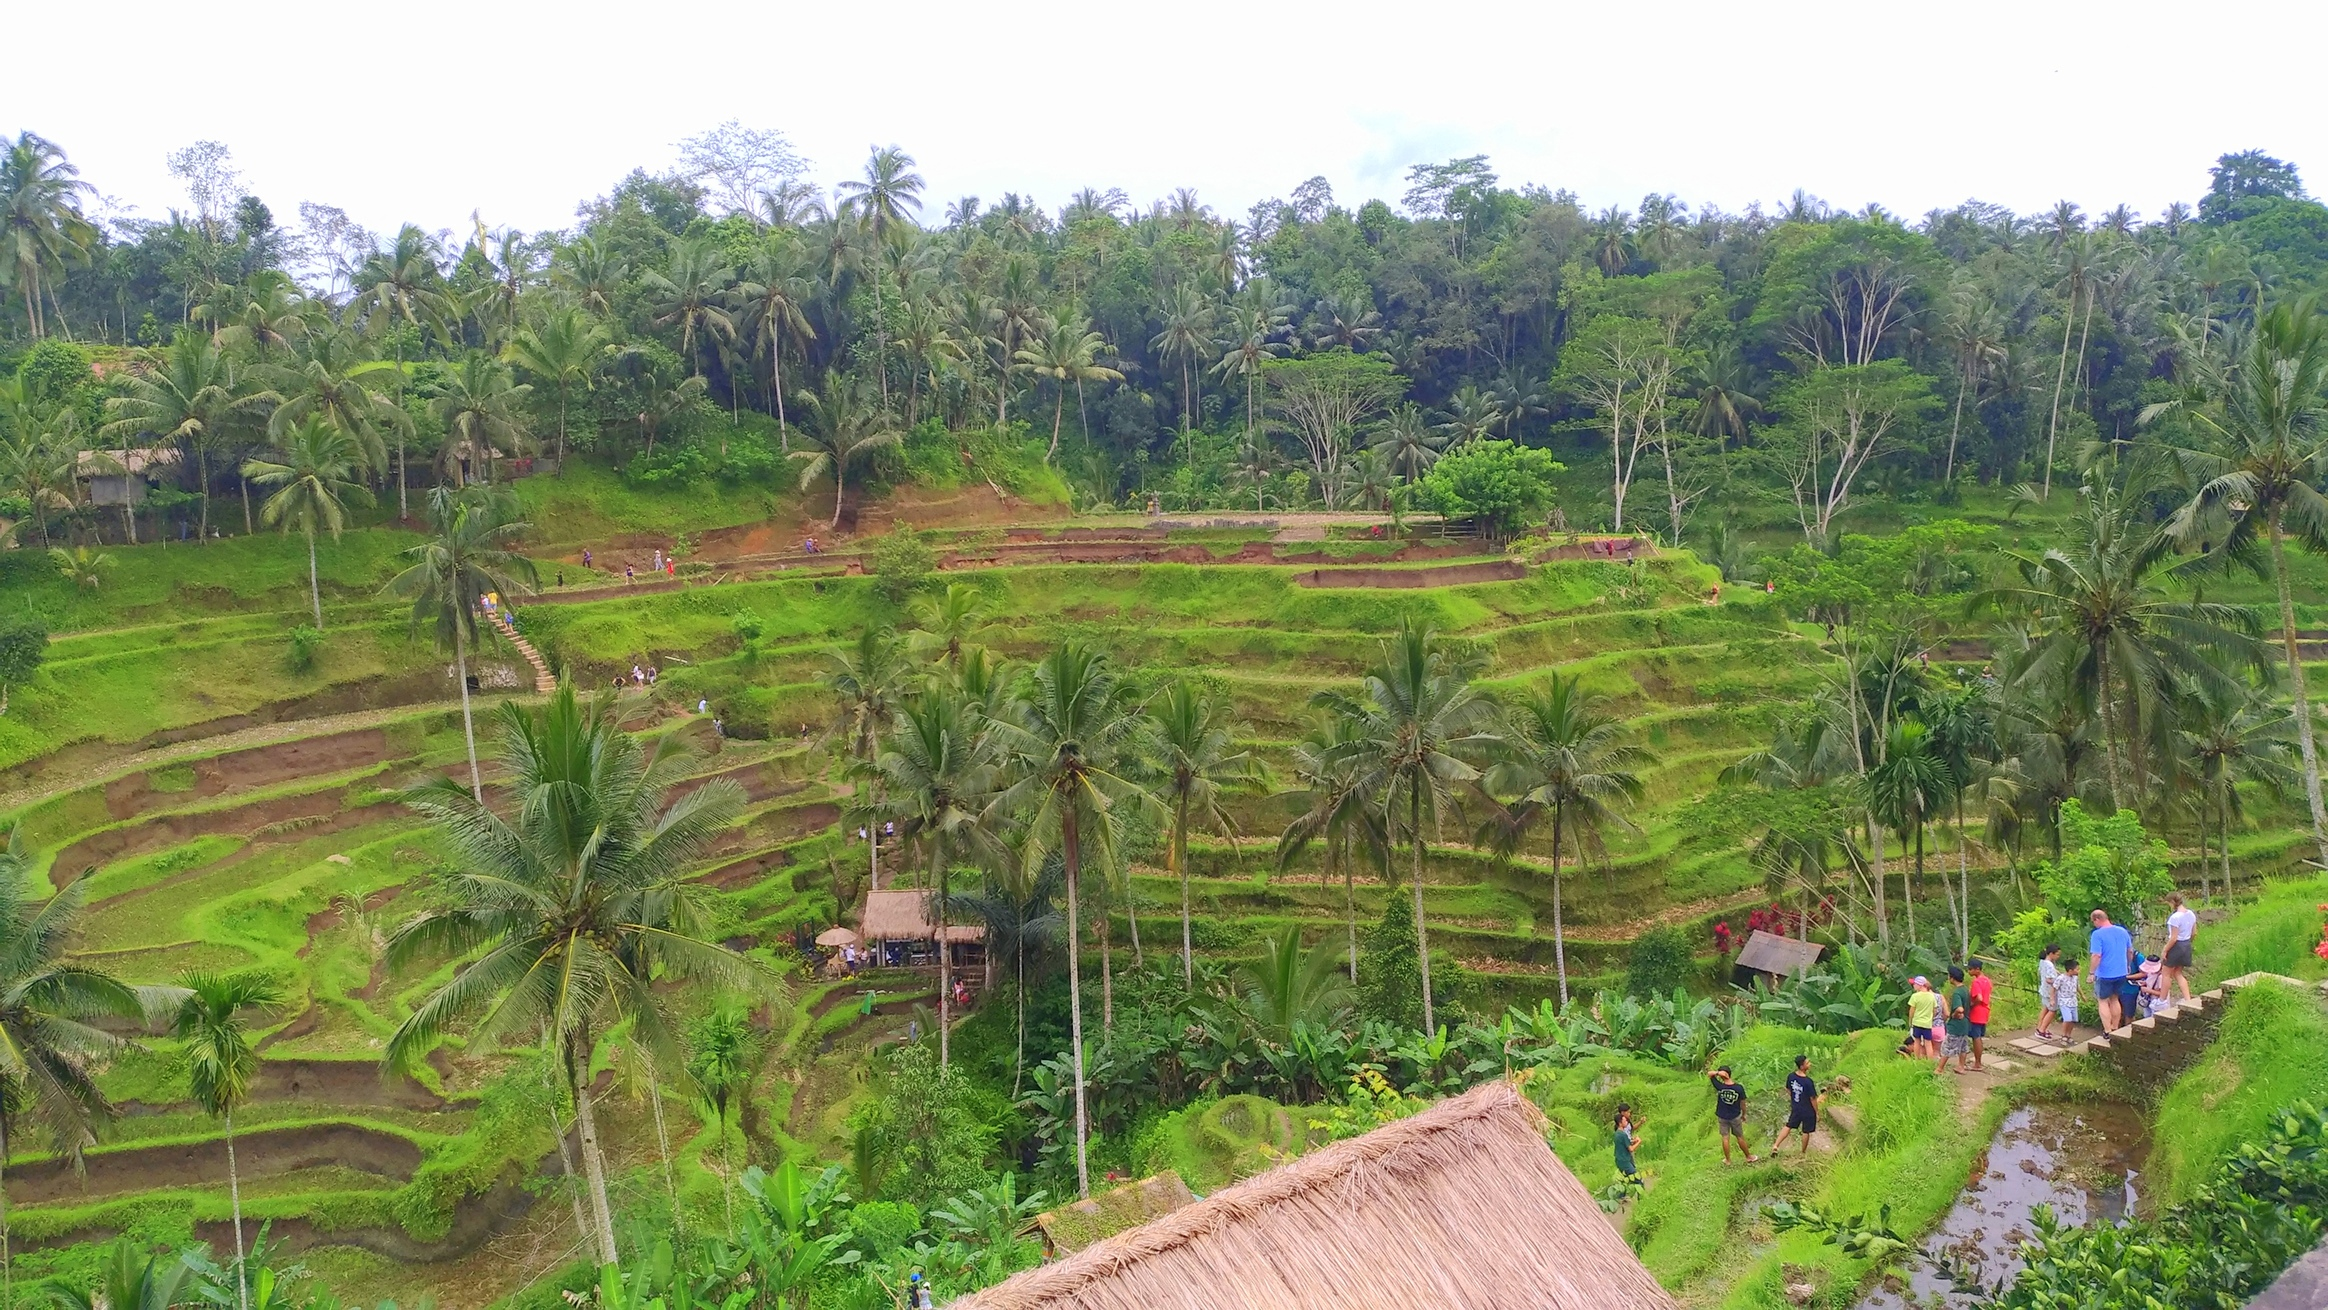 8 easy hiking trails indonesia - tegallalang rice terrace